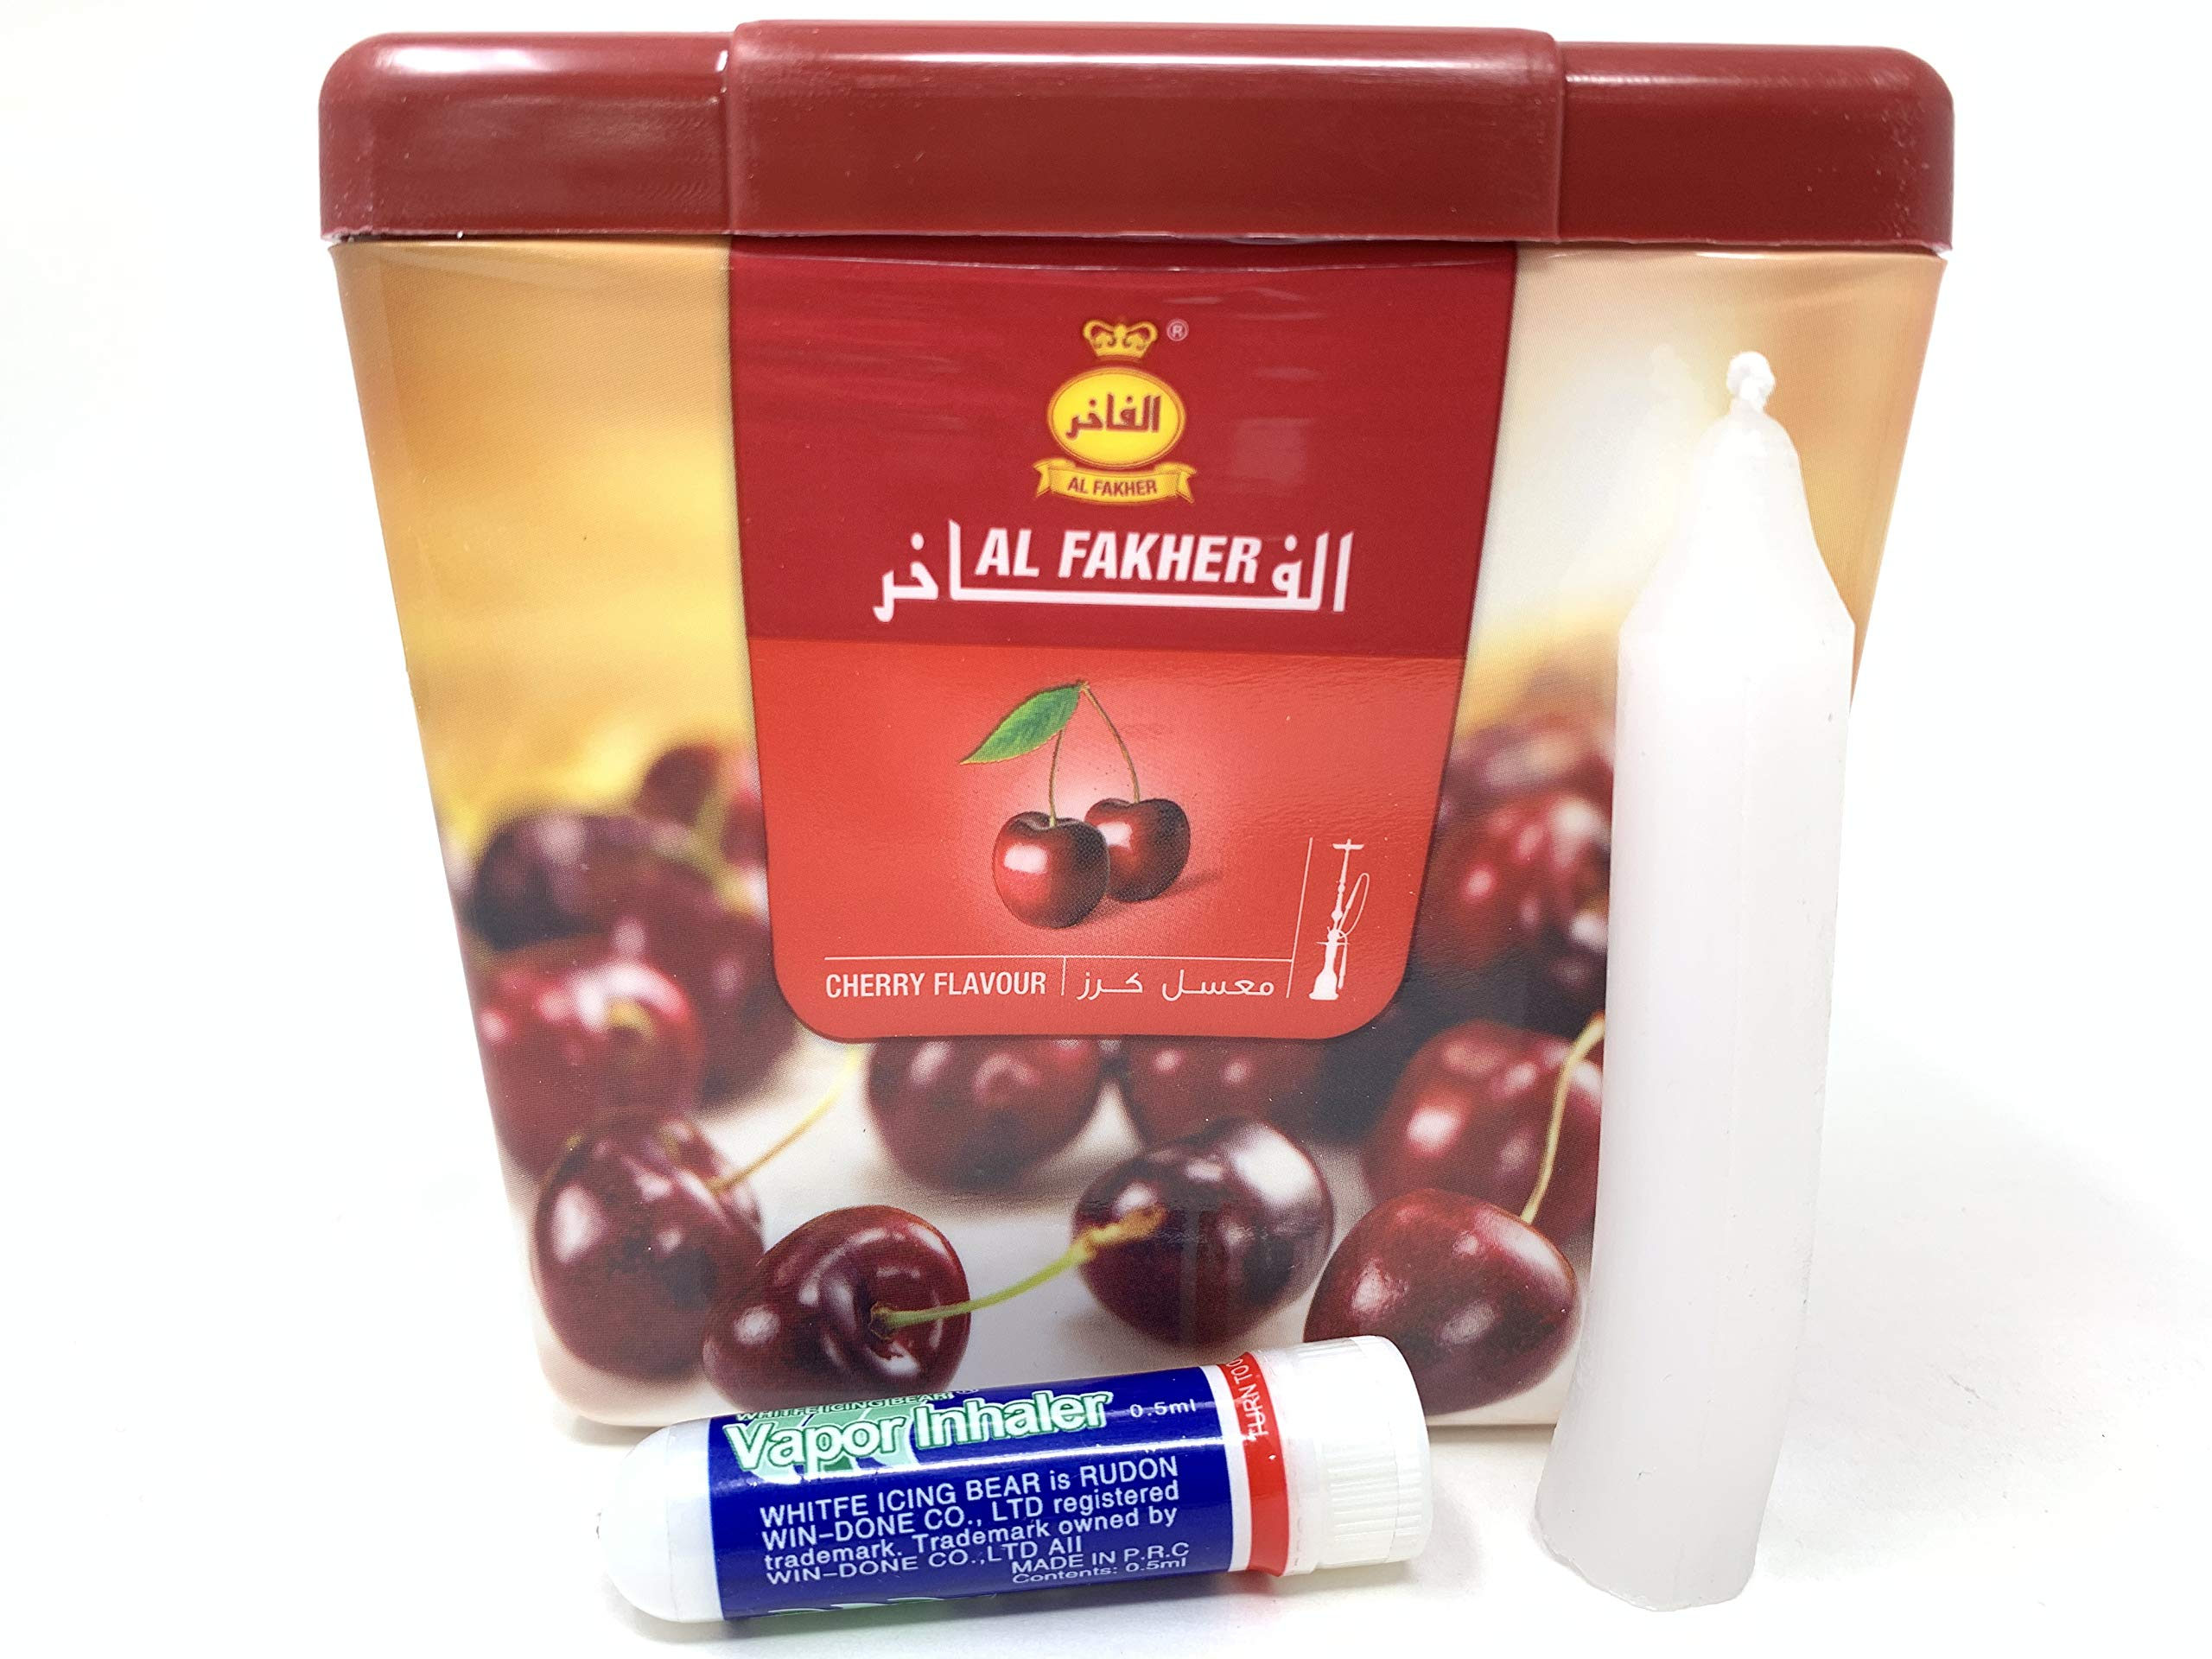 1 Kg. Al Fakher Shisha Molasses - Non Tobacco Cherry Flavour Hookah Water Pipe Sold by SuperStore77 with Trademark Candle and Vapor Inhaler